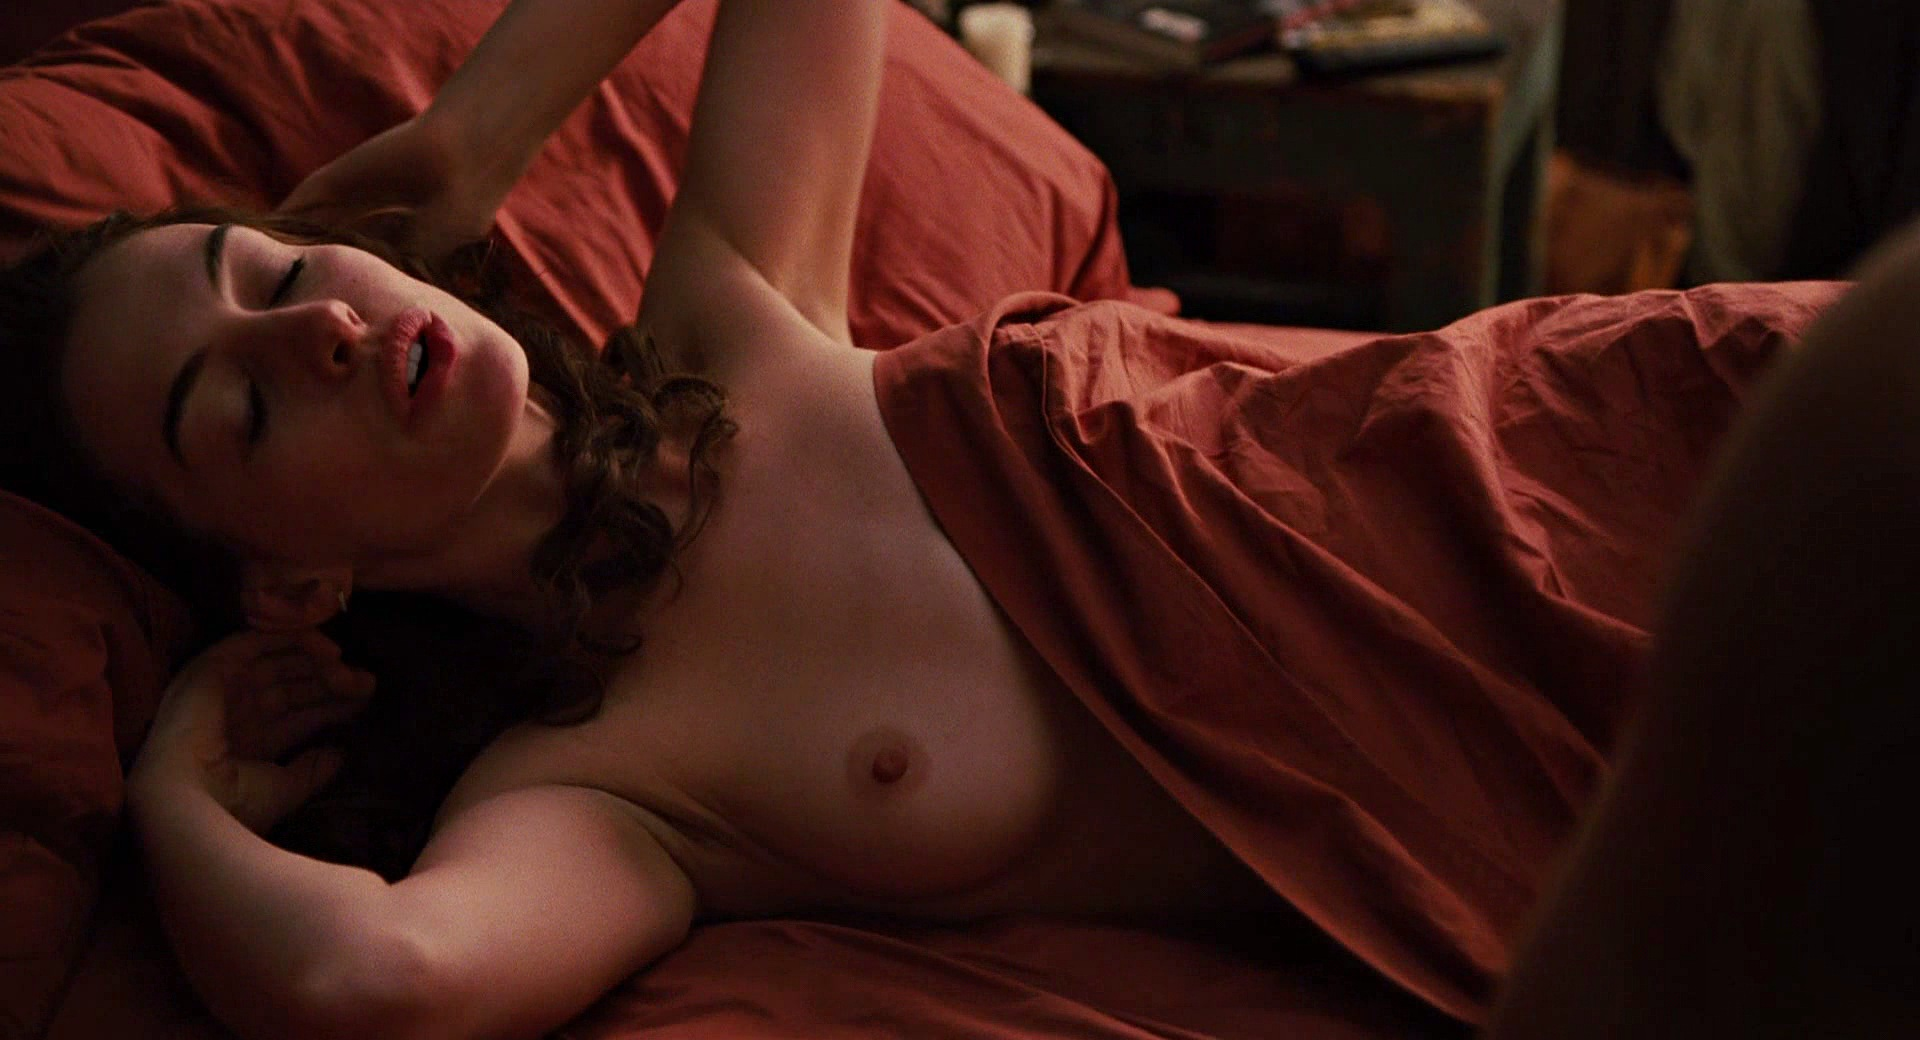 Anne Hathaway naked boobs